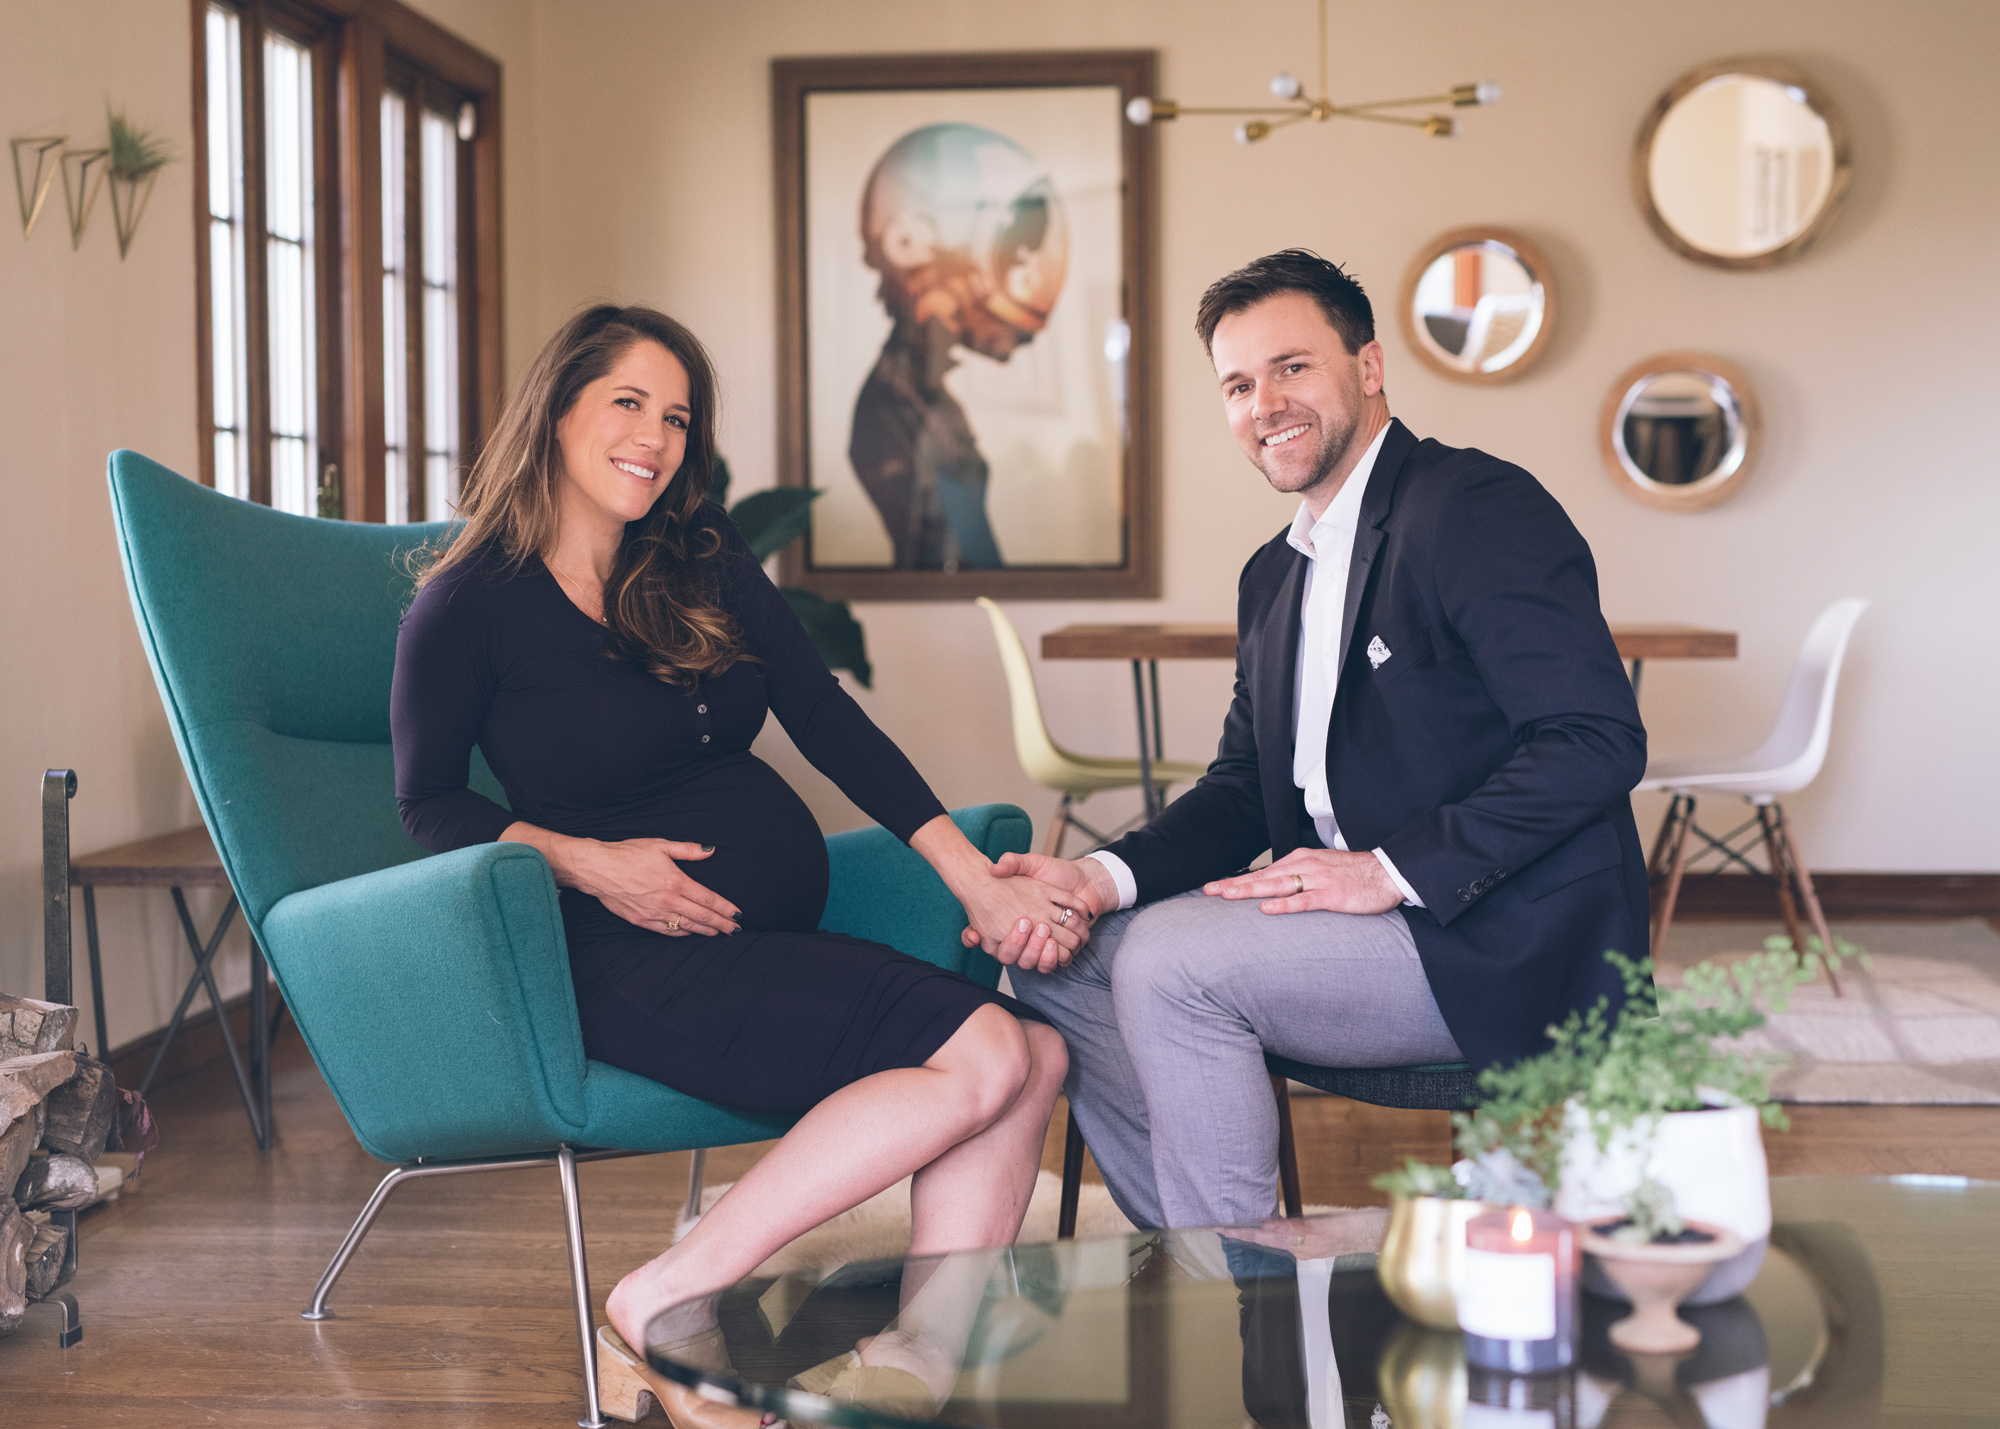 maternity-session-at-a-mid-century-modern-home-in-oakland.jpg